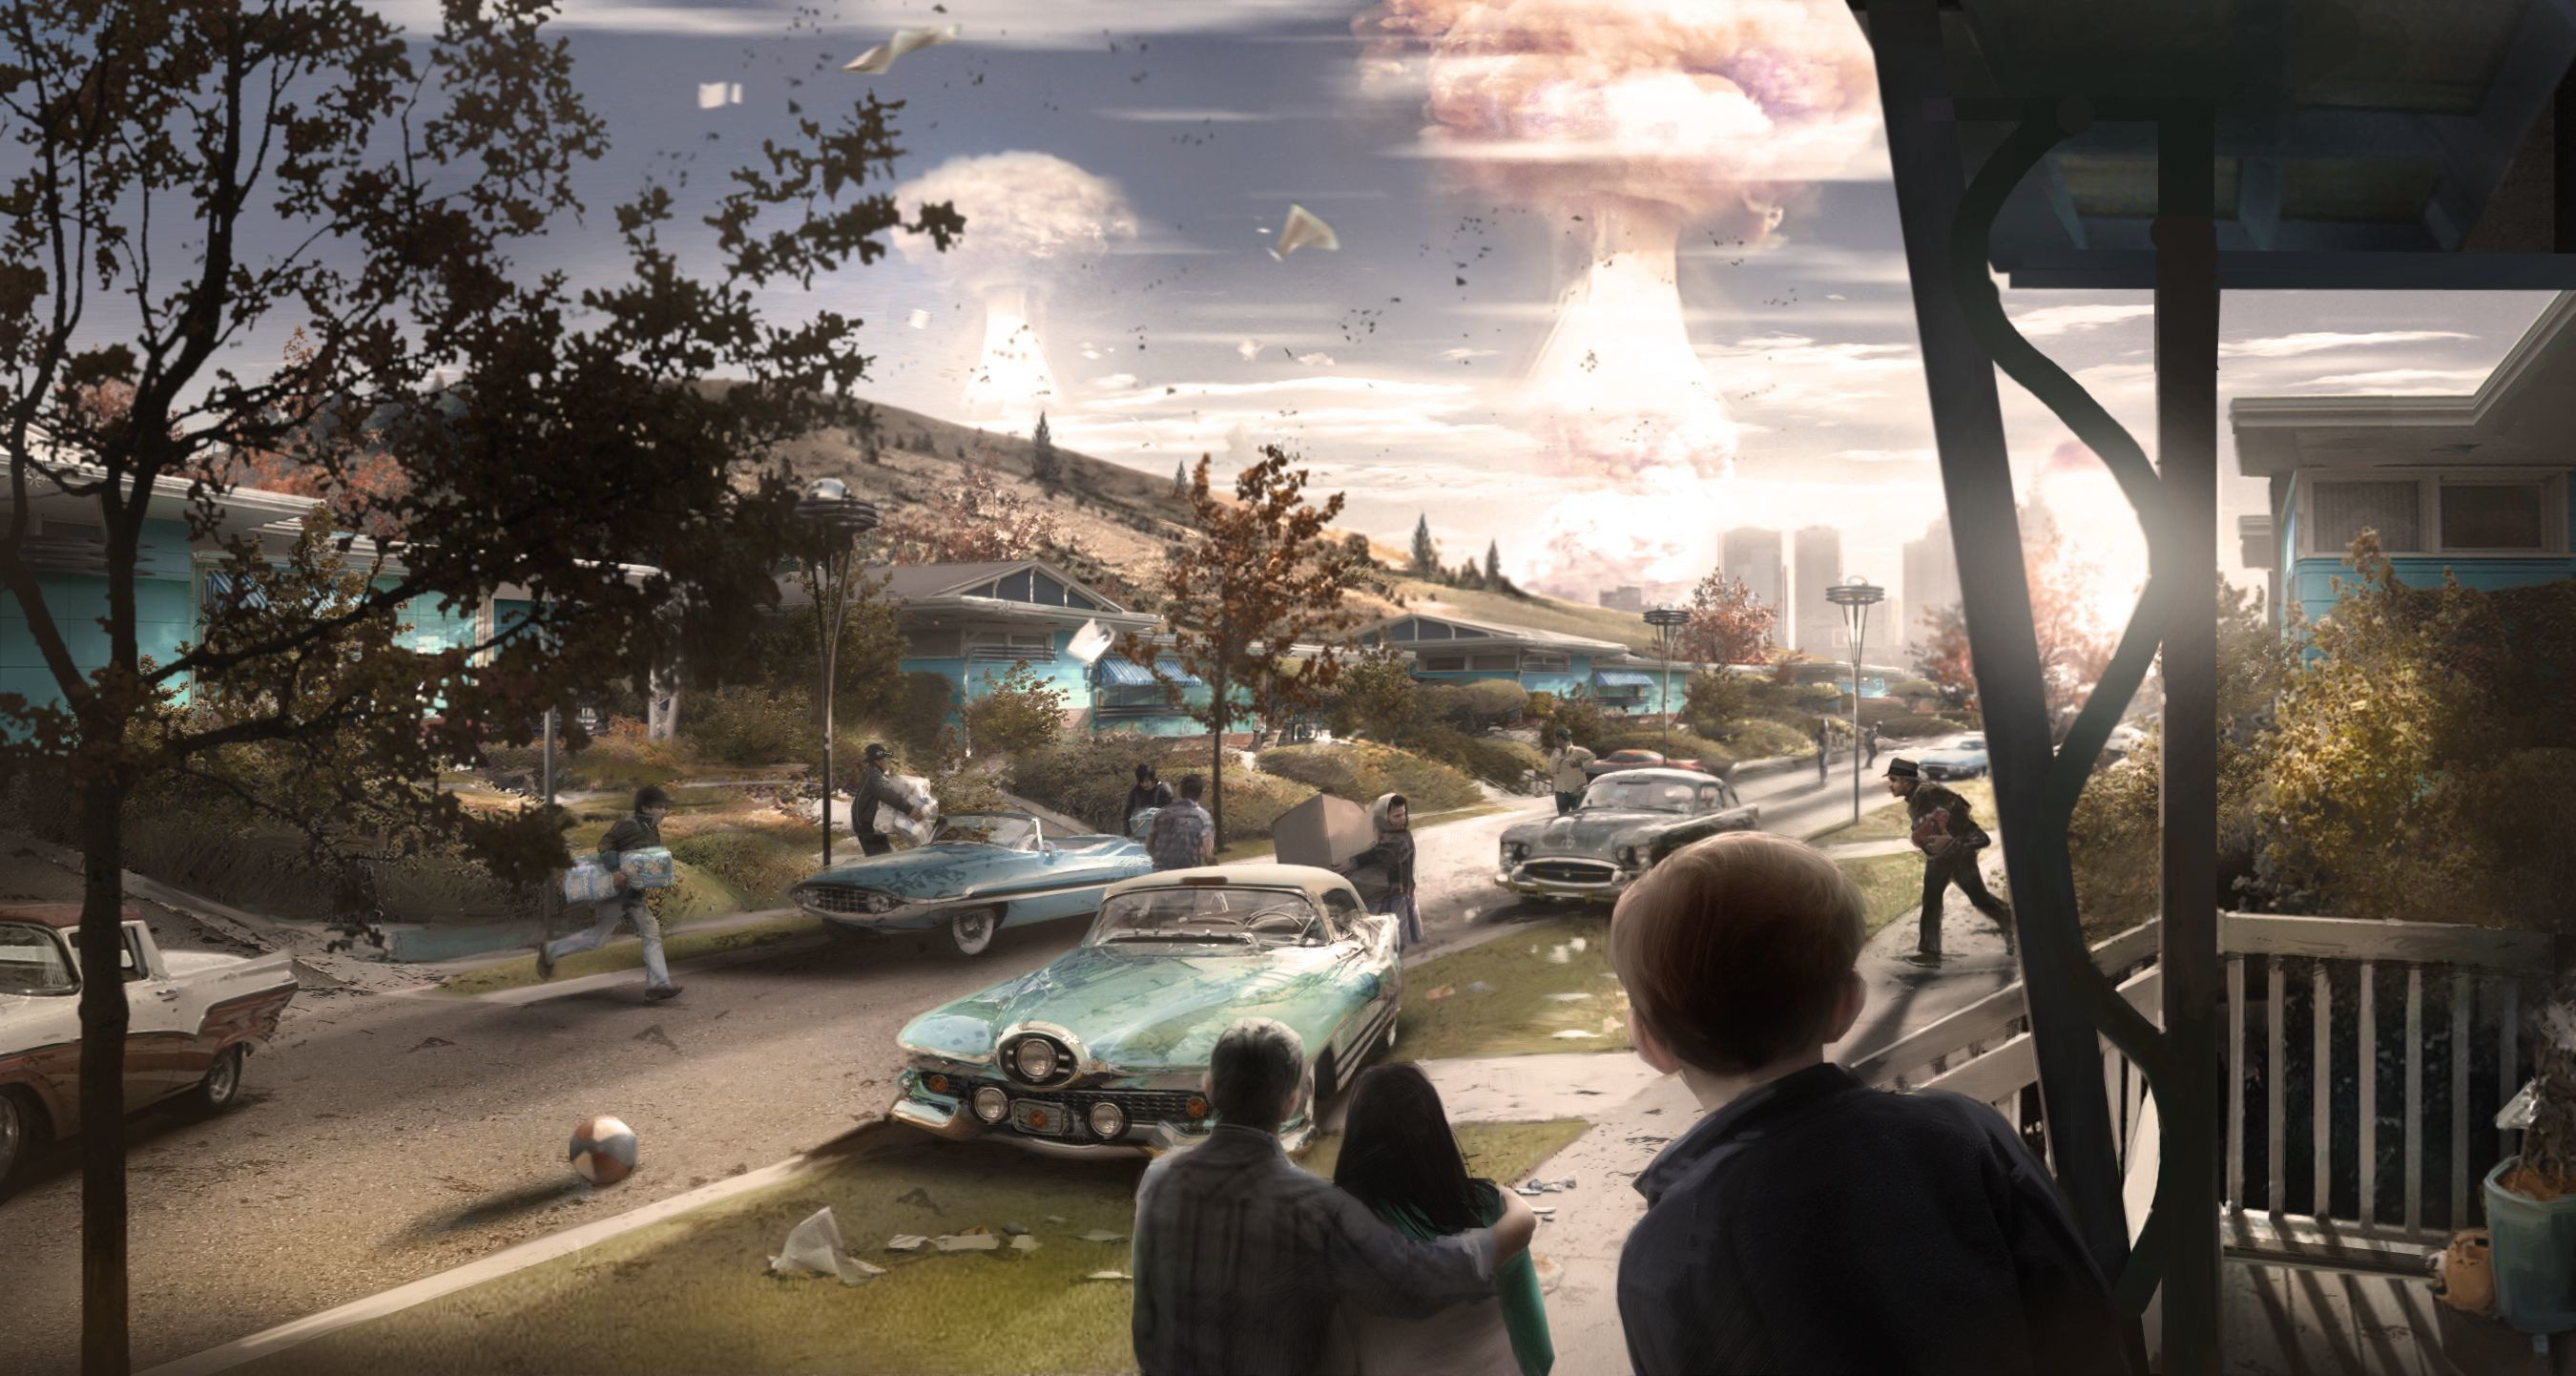 Fallout 4's concept art is wallpaper worthy